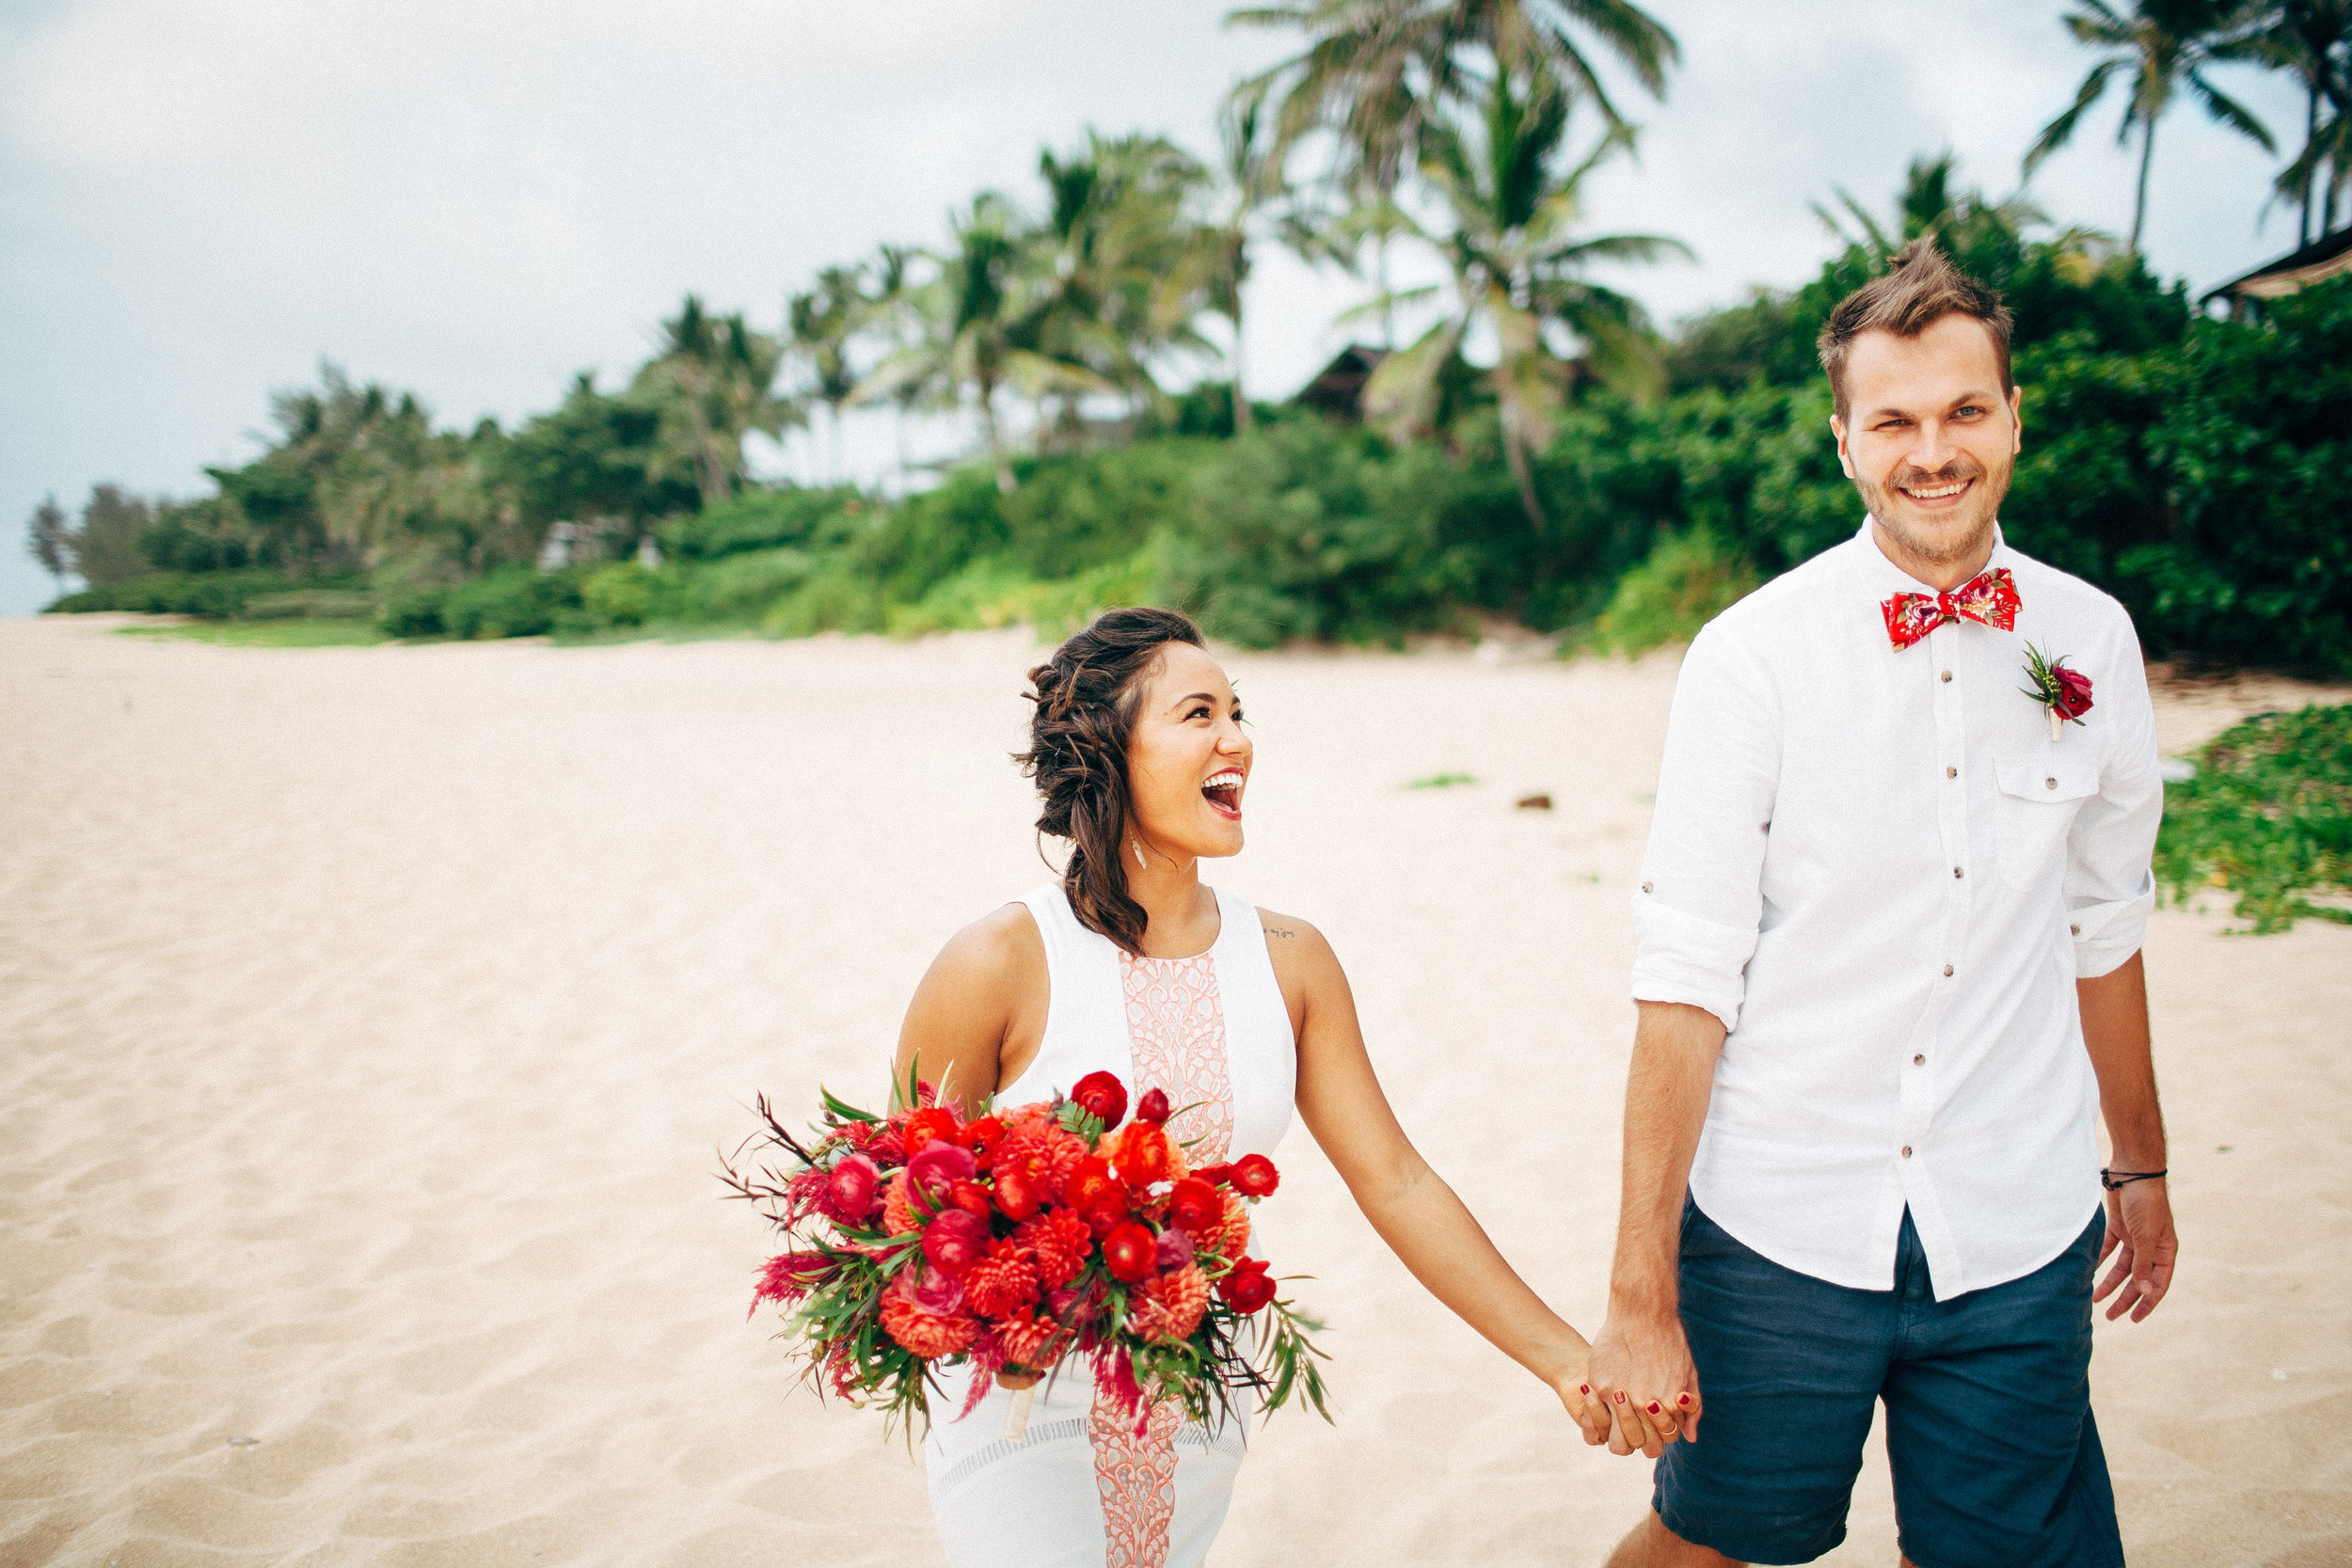 Unique Eclectic Vibrant and Colorful Private Elopement for Two by the Ocean Lake with Burgers and Beer with a Rent the Runway Gown